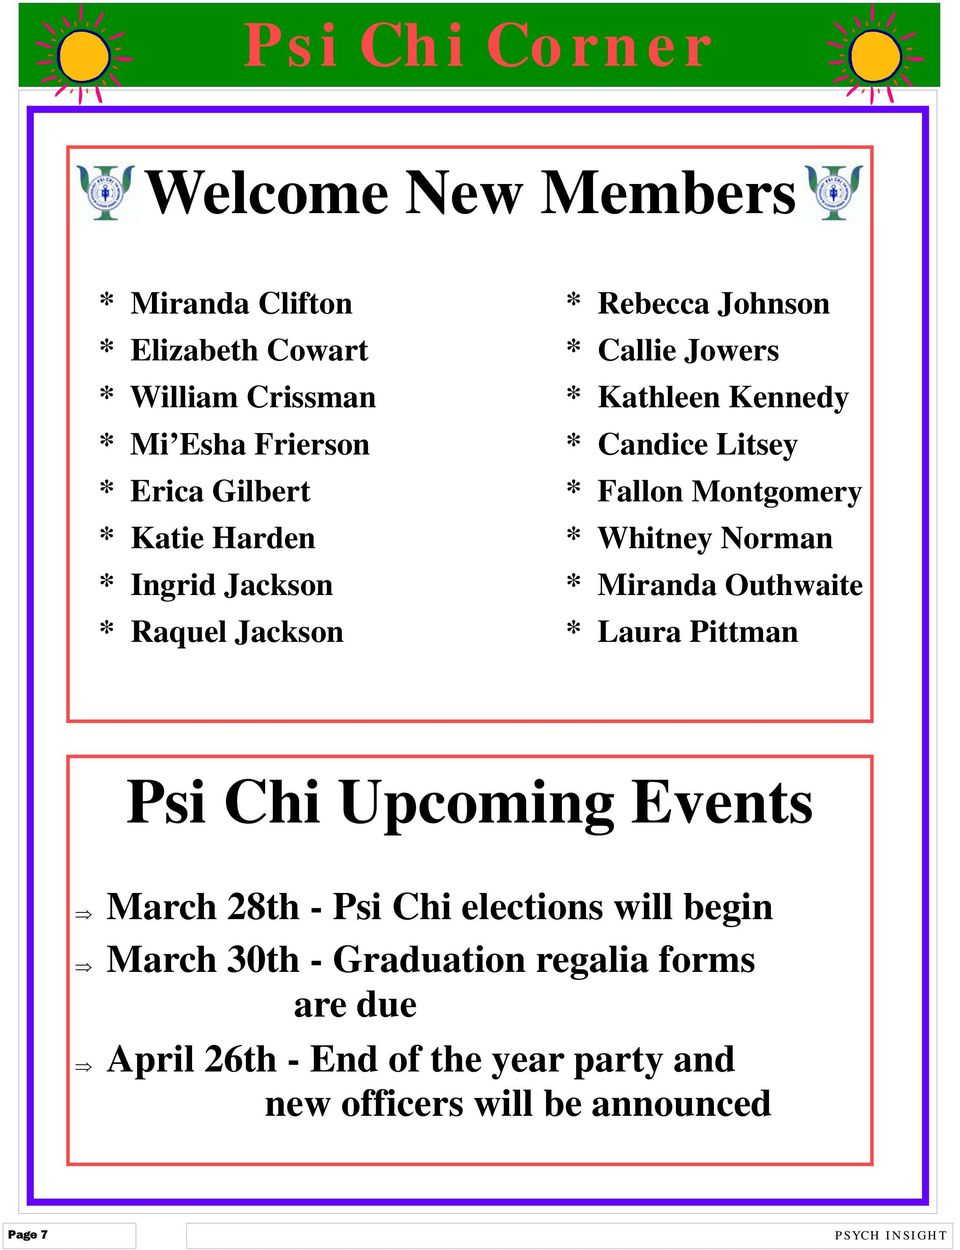 Ingrid Jackson * Miranda Outhwaite * Raquel Jackson * Laura Pittman Psi Chi Upcoming Events March 28th - Psi Chi elections